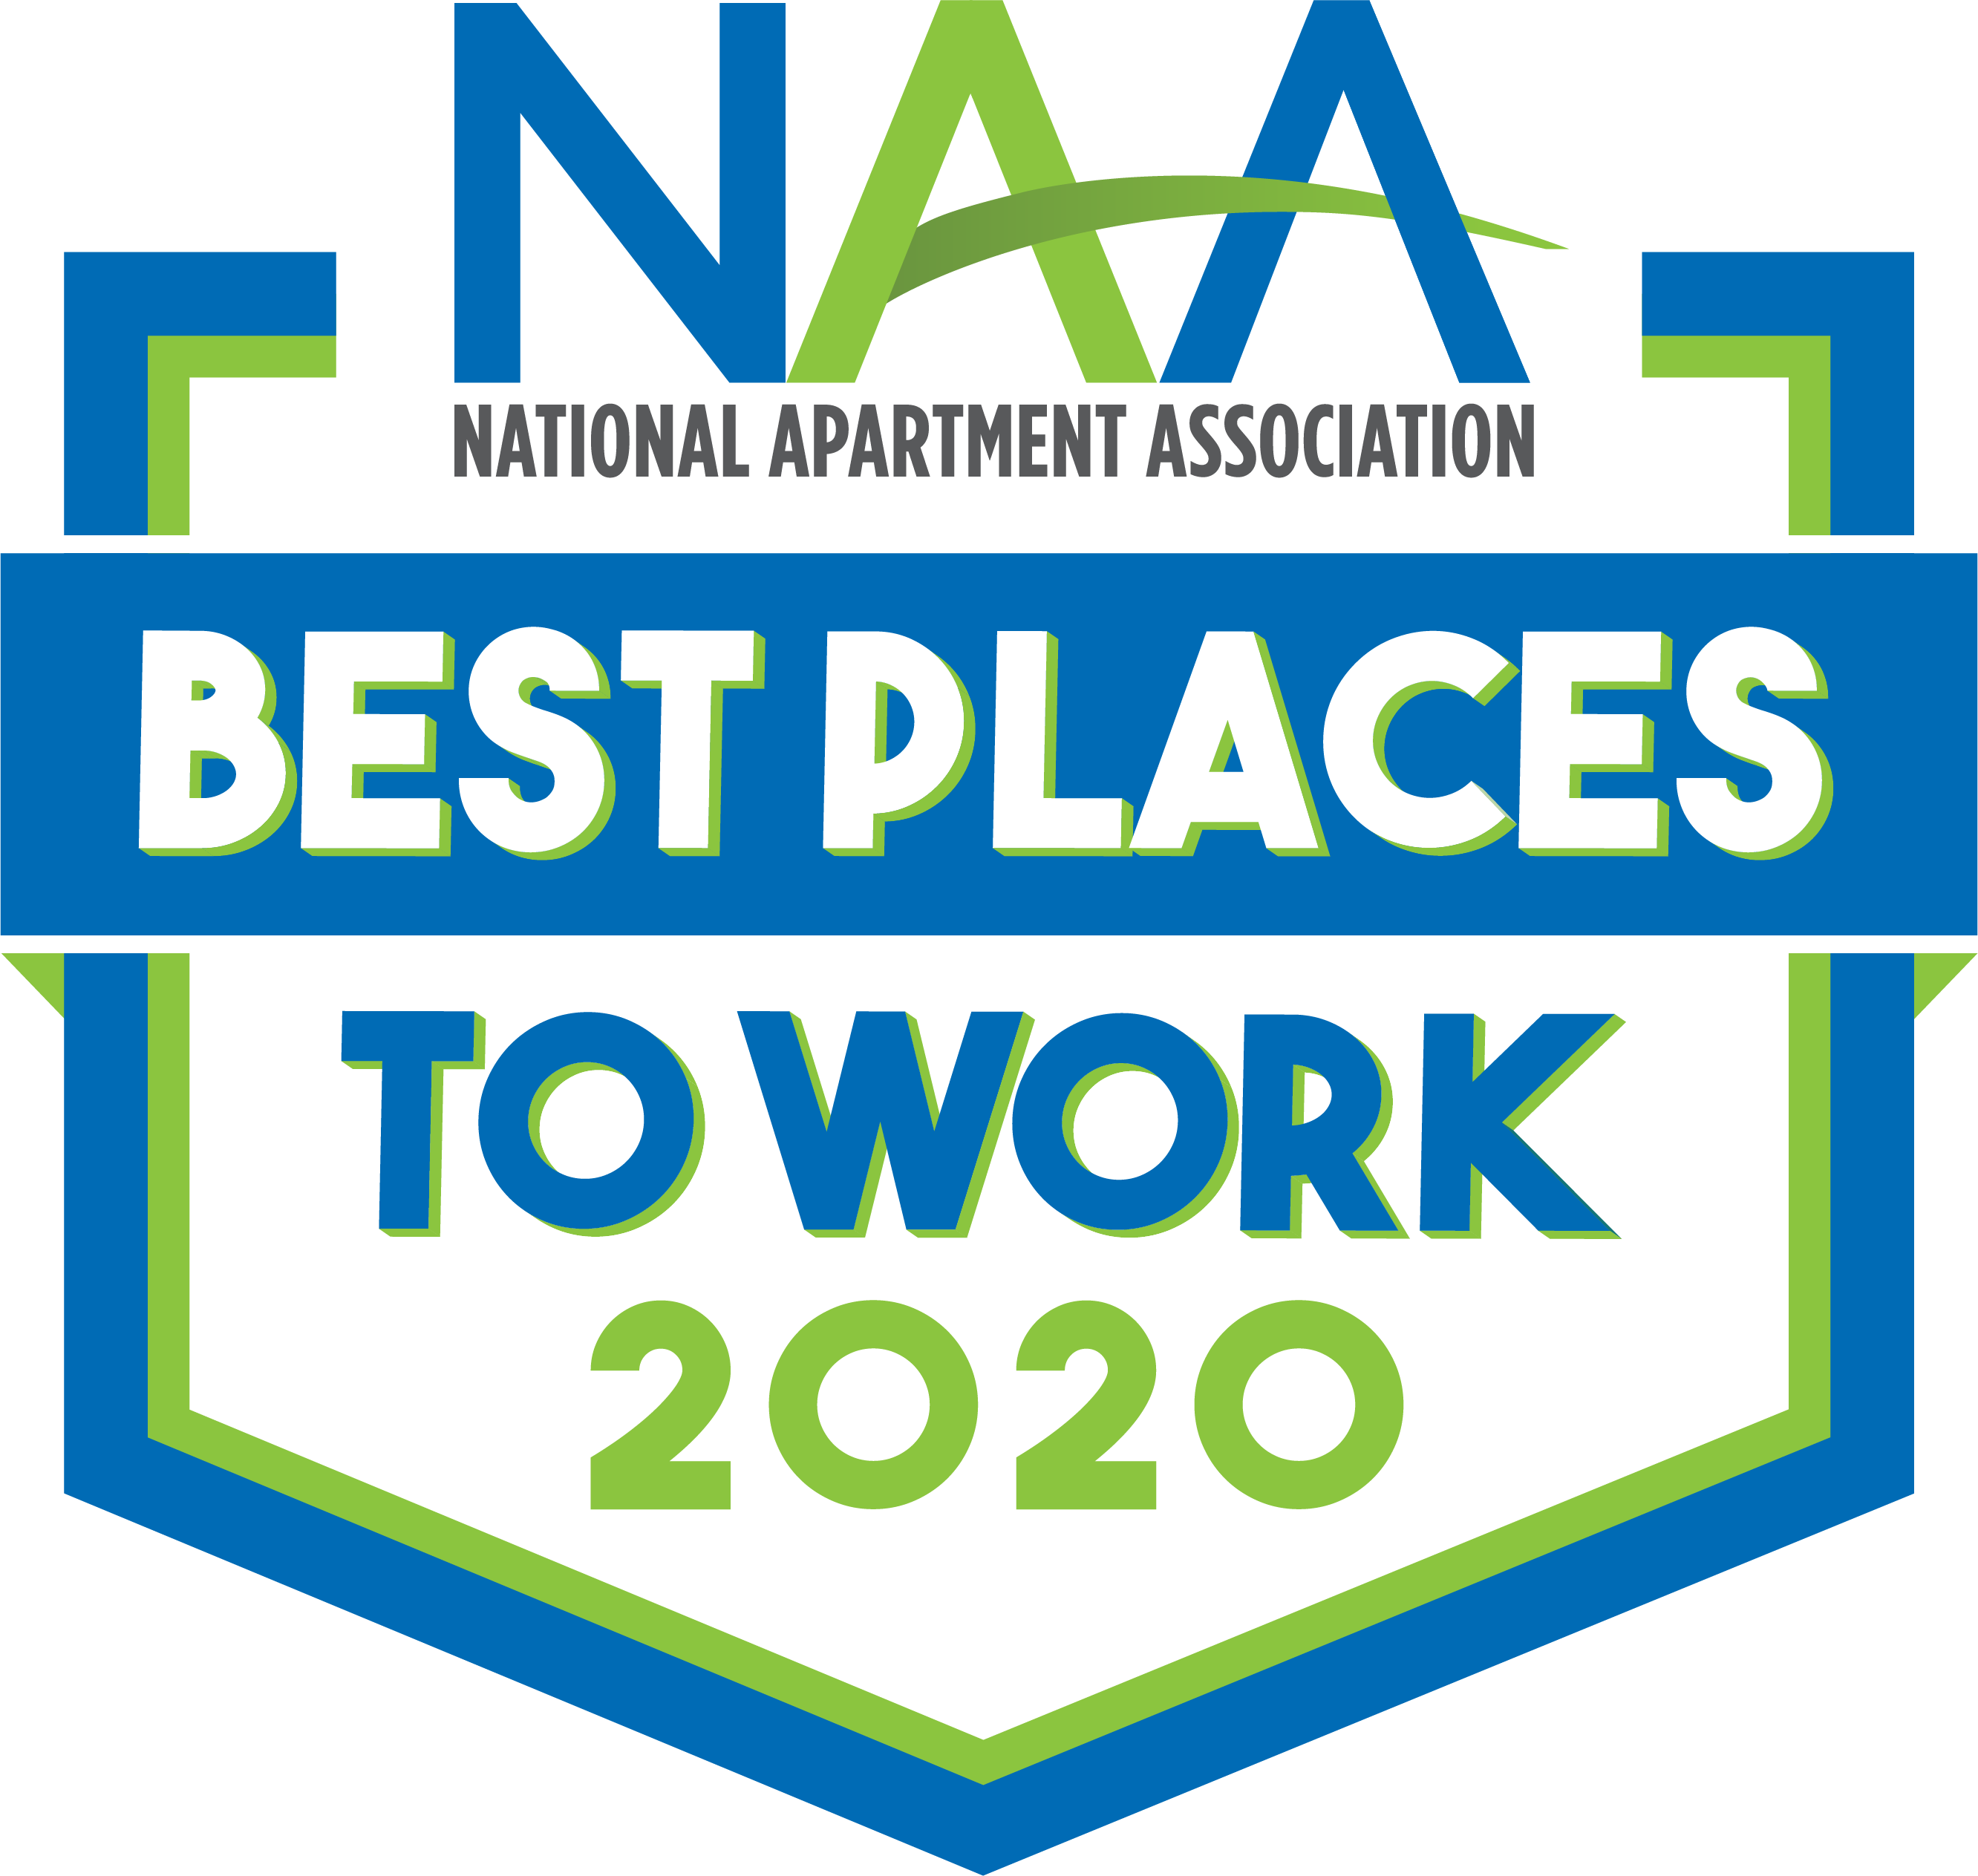 NAA Best Places to Work 2020